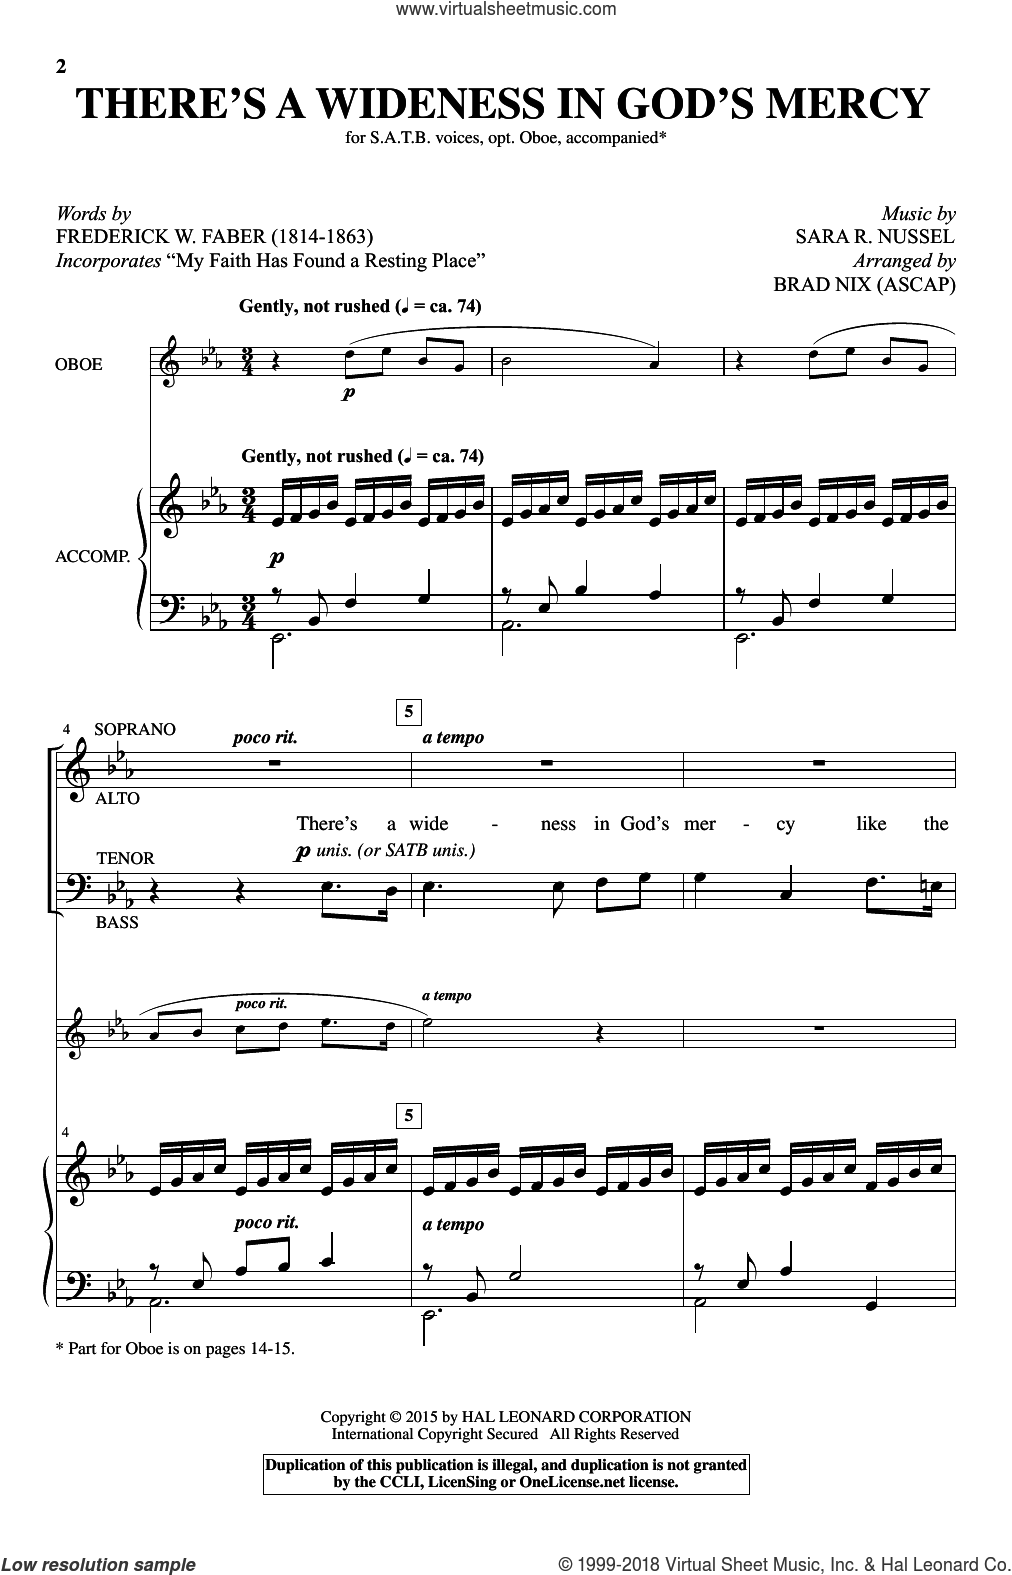 There's A Wideness In God's Mercy sheet music for choir by Brad Nix, Frederick W. Faber and Sara R. Nussel, intermediate skill level